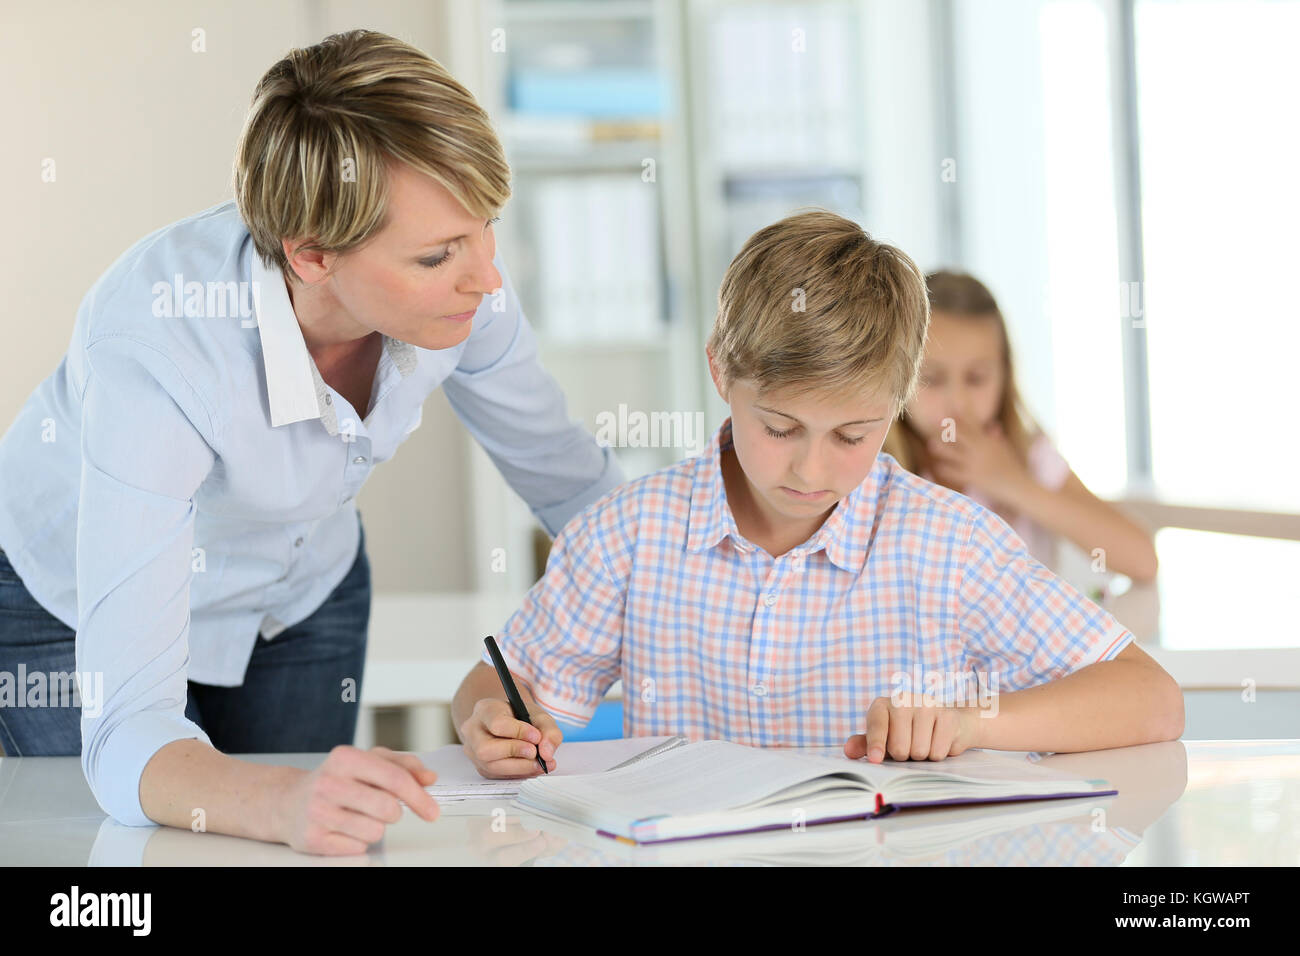 Teacher with schoolboy in classroom - Stock Image